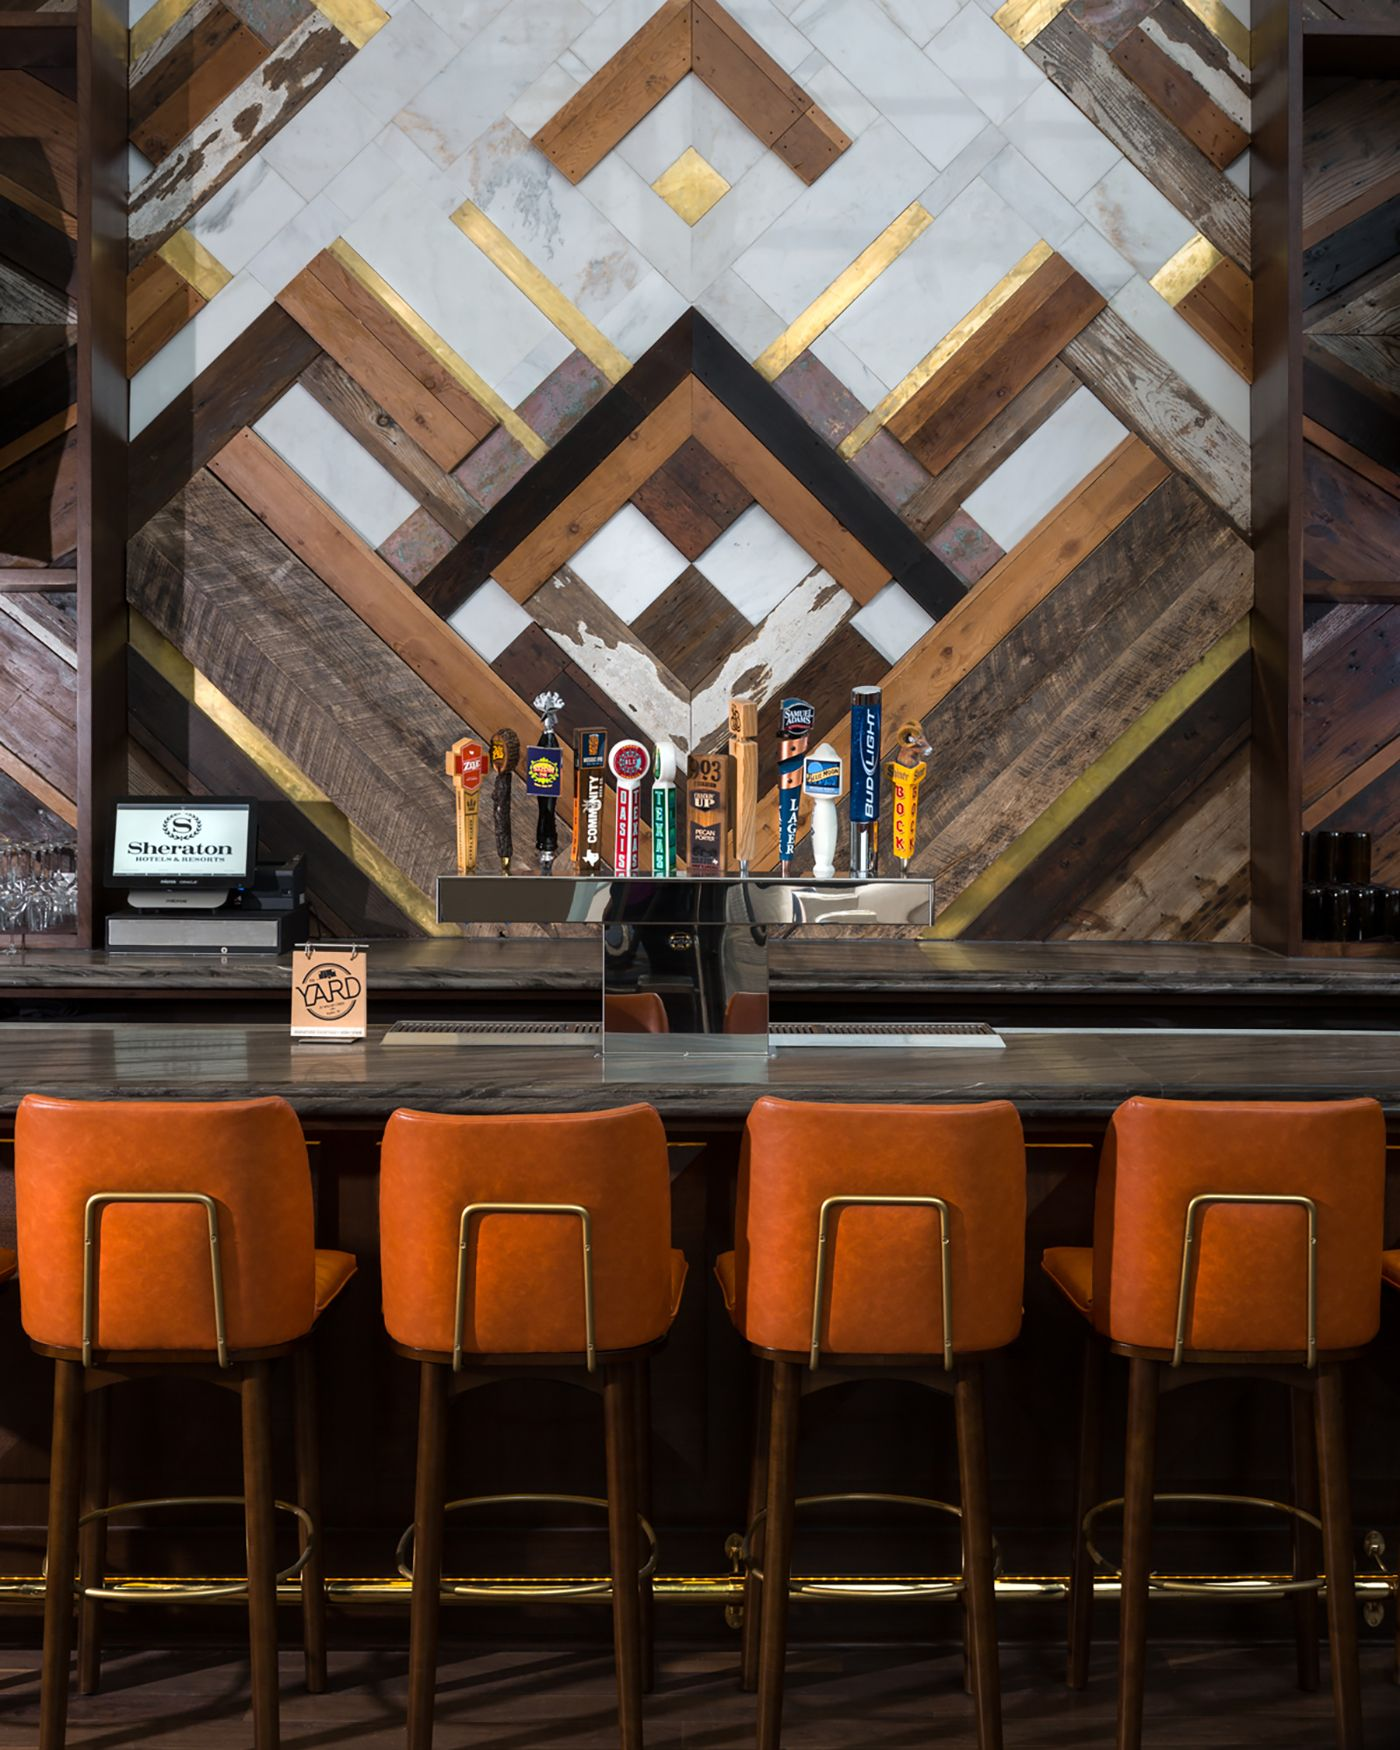 Bar interior design ideas visit the image link for more details interiordecor